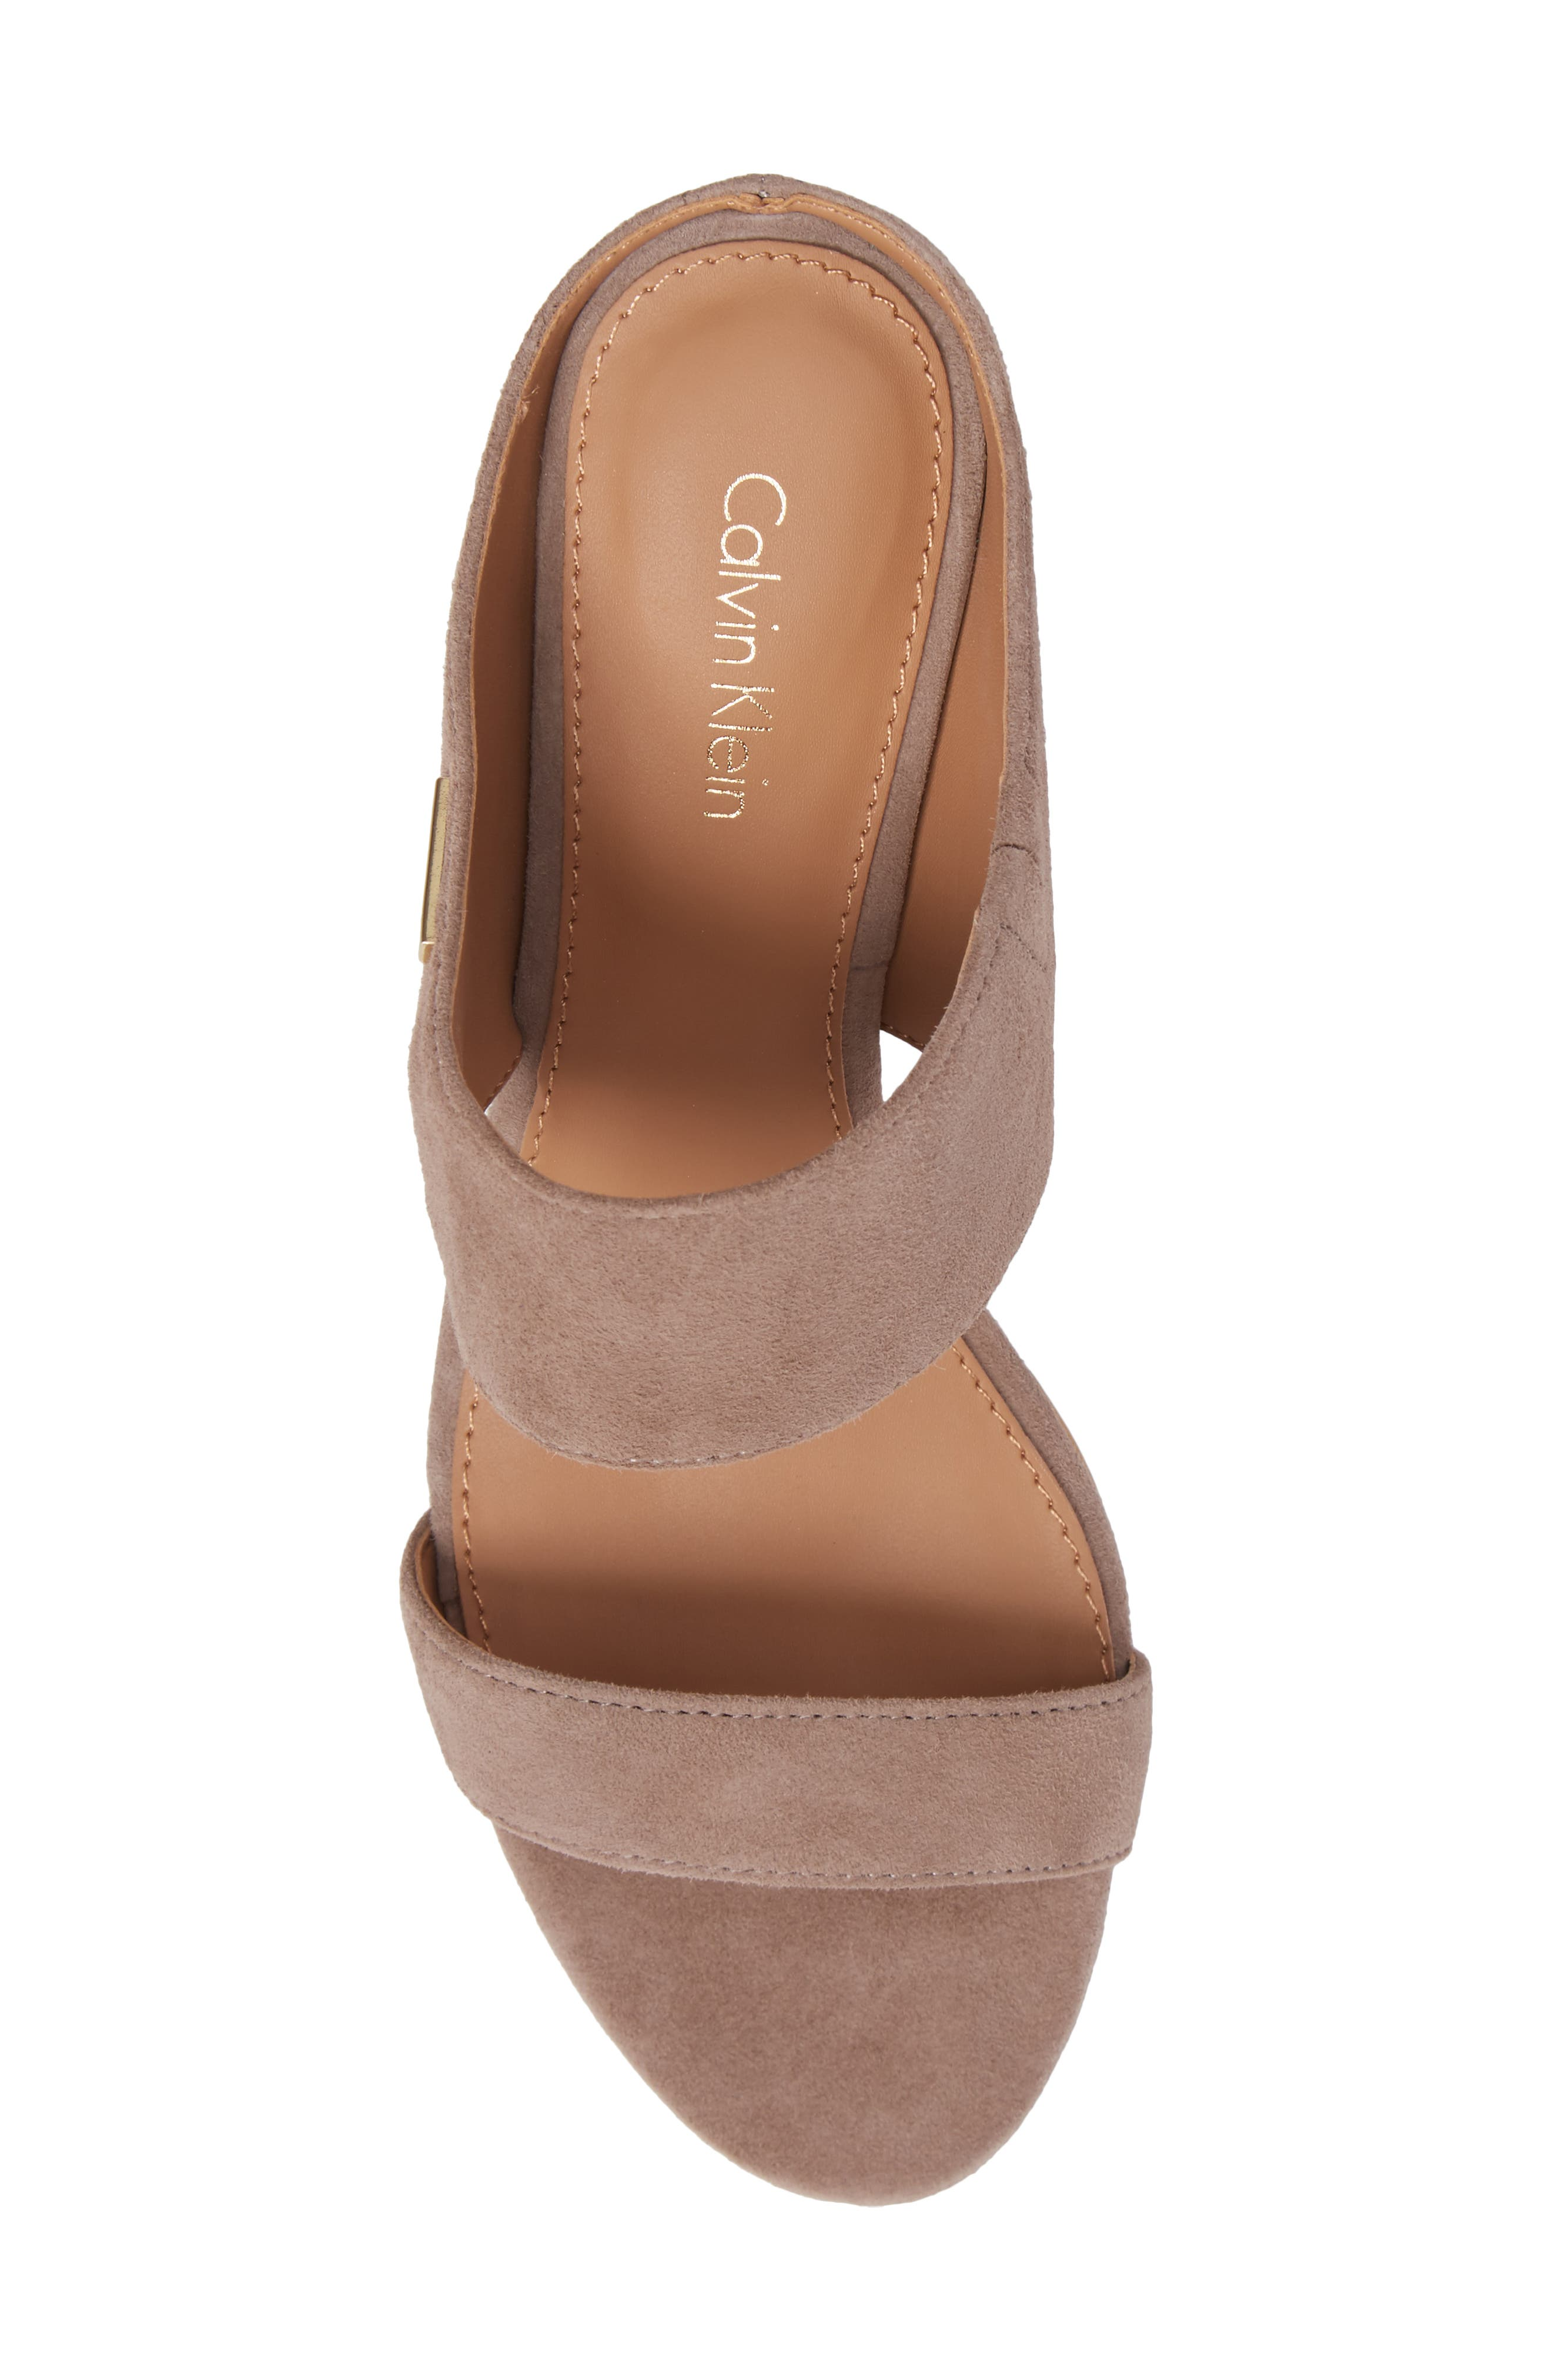 Phyllis Studded Wedge Sandal,                             Alternate thumbnail 5, color,                             Winter Taupe Suede